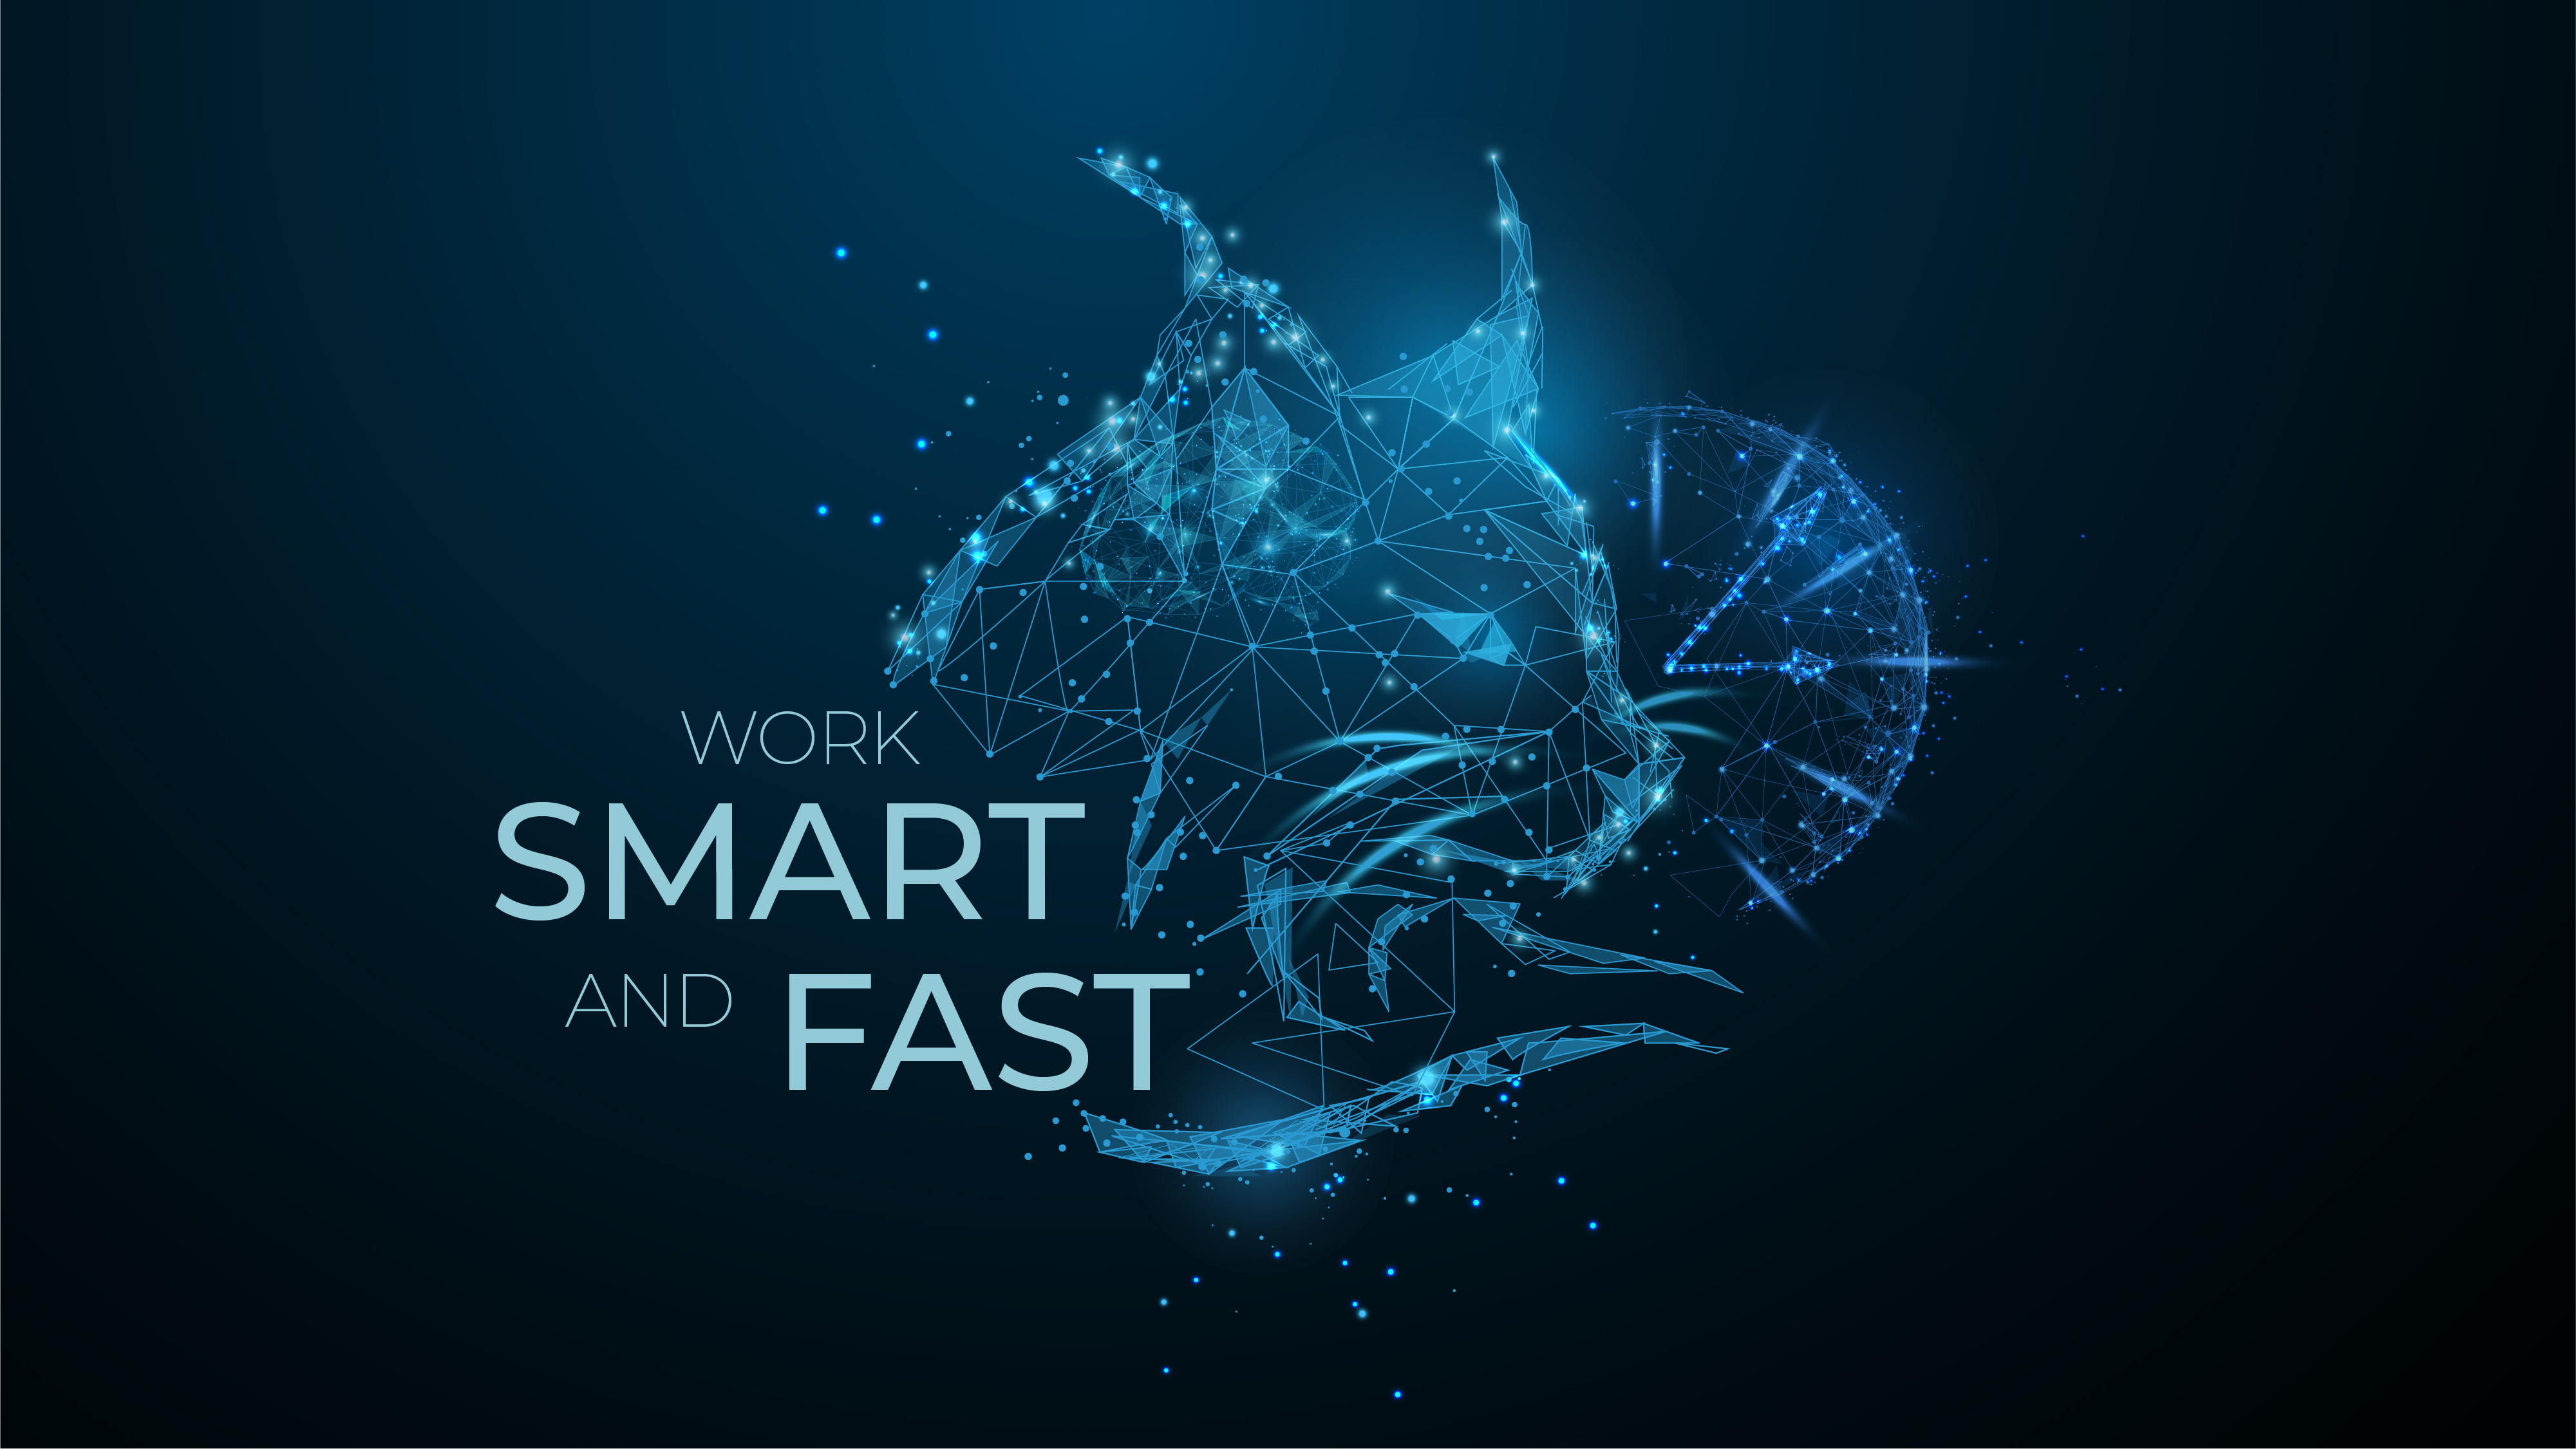 Work Smart And Fast